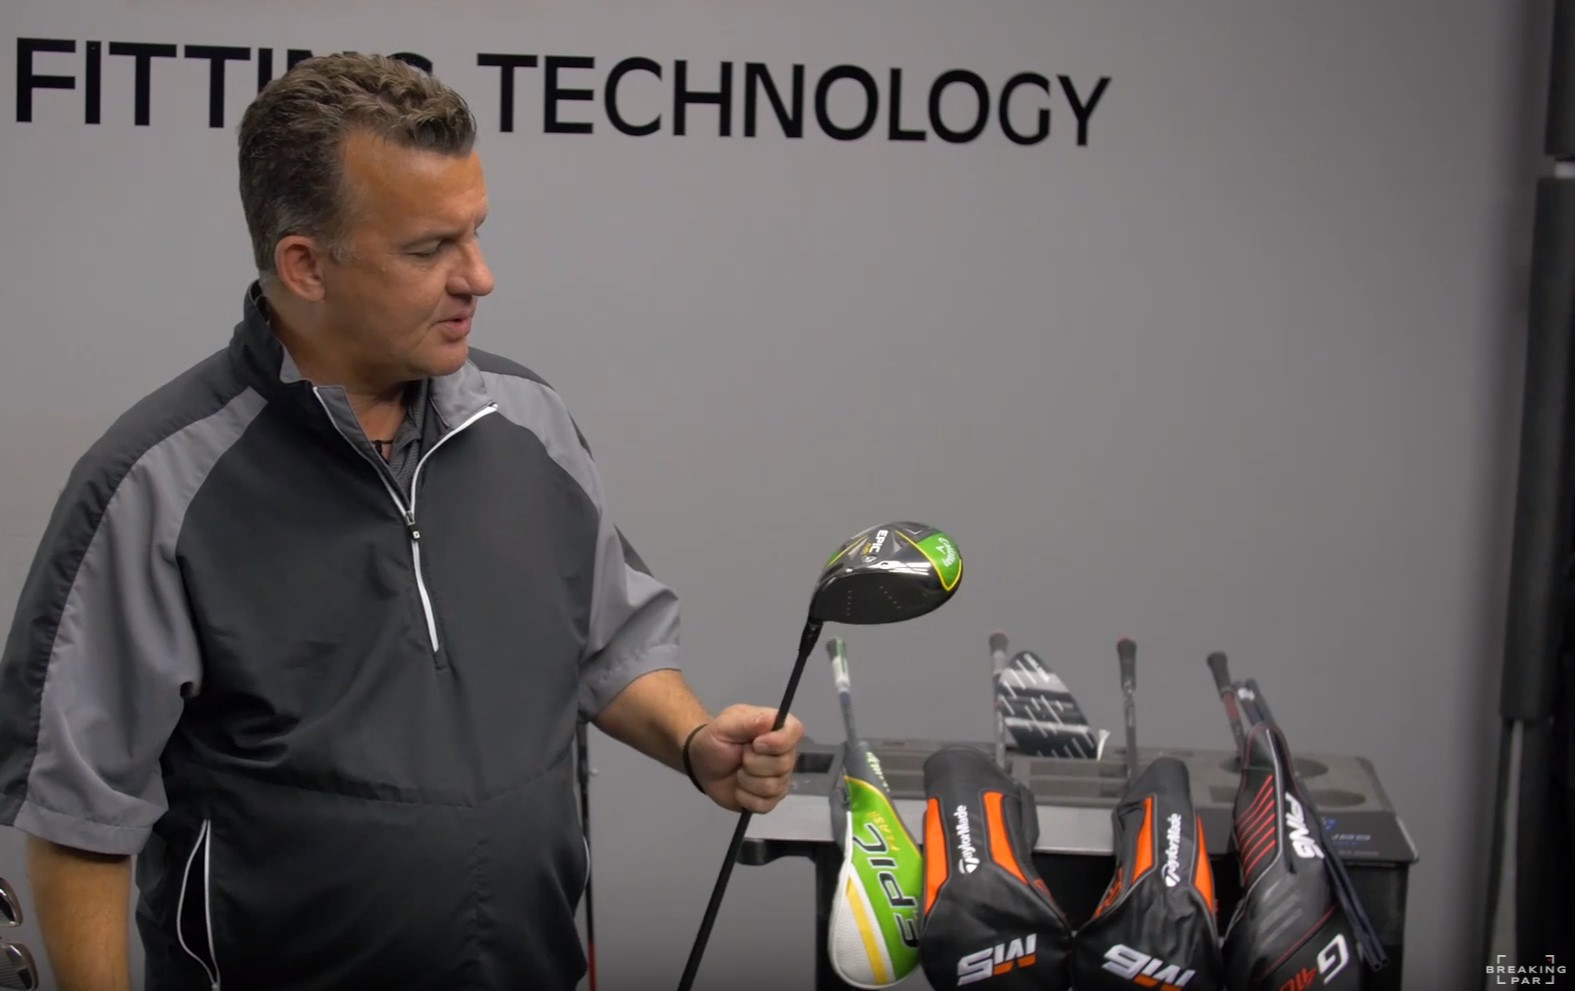 Rumoured products to be released around the 2019 PGA show